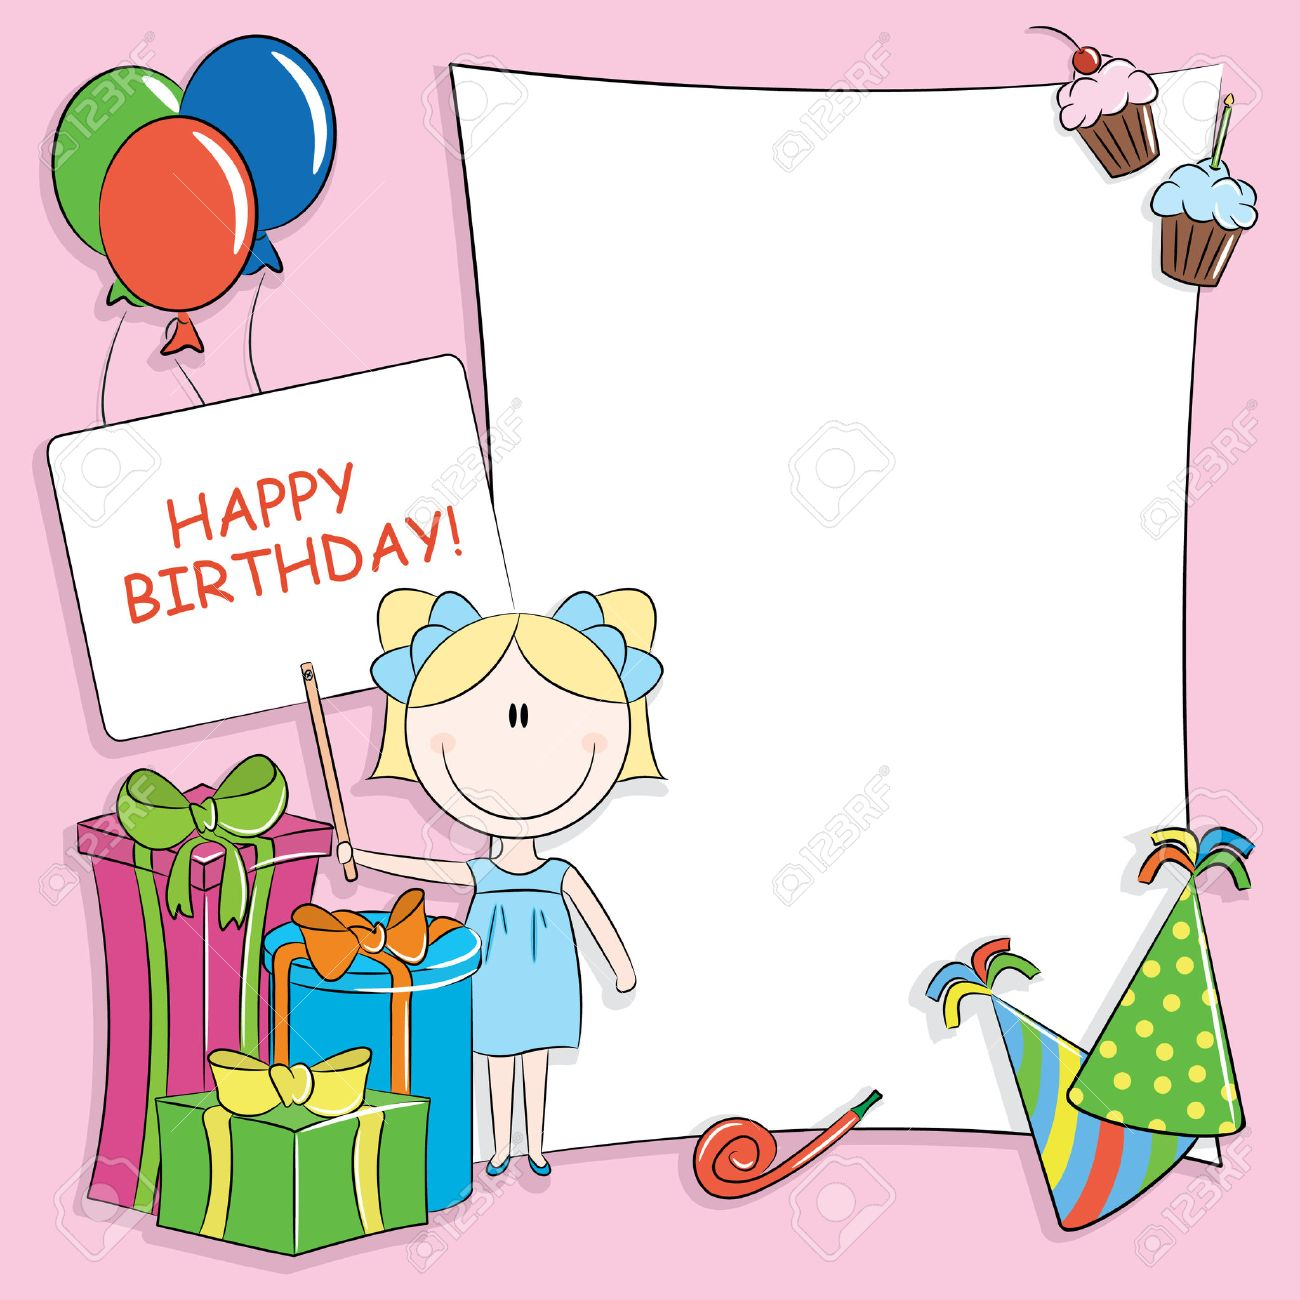 Happy birthday greeting card with blank place for your wishes and message - 7548128